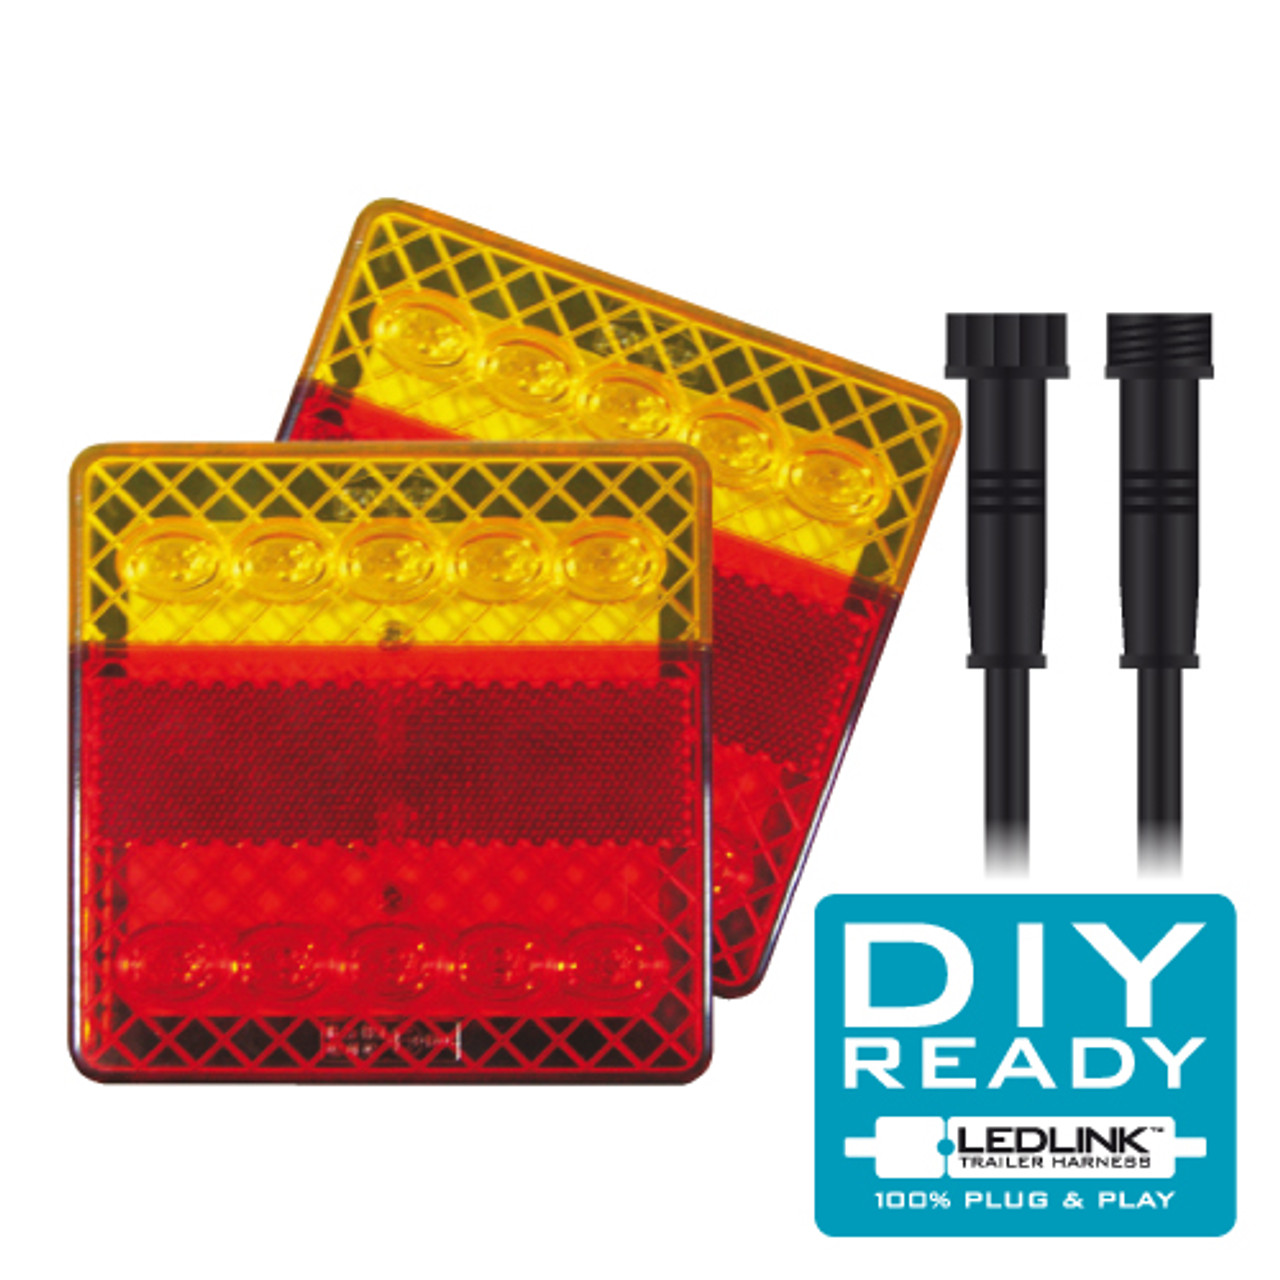 Complete Box Trailer LED Tail Light DIY Kit. 12 Volt, Suit Box Trailer 6 x 4. This is a Plug and Play System